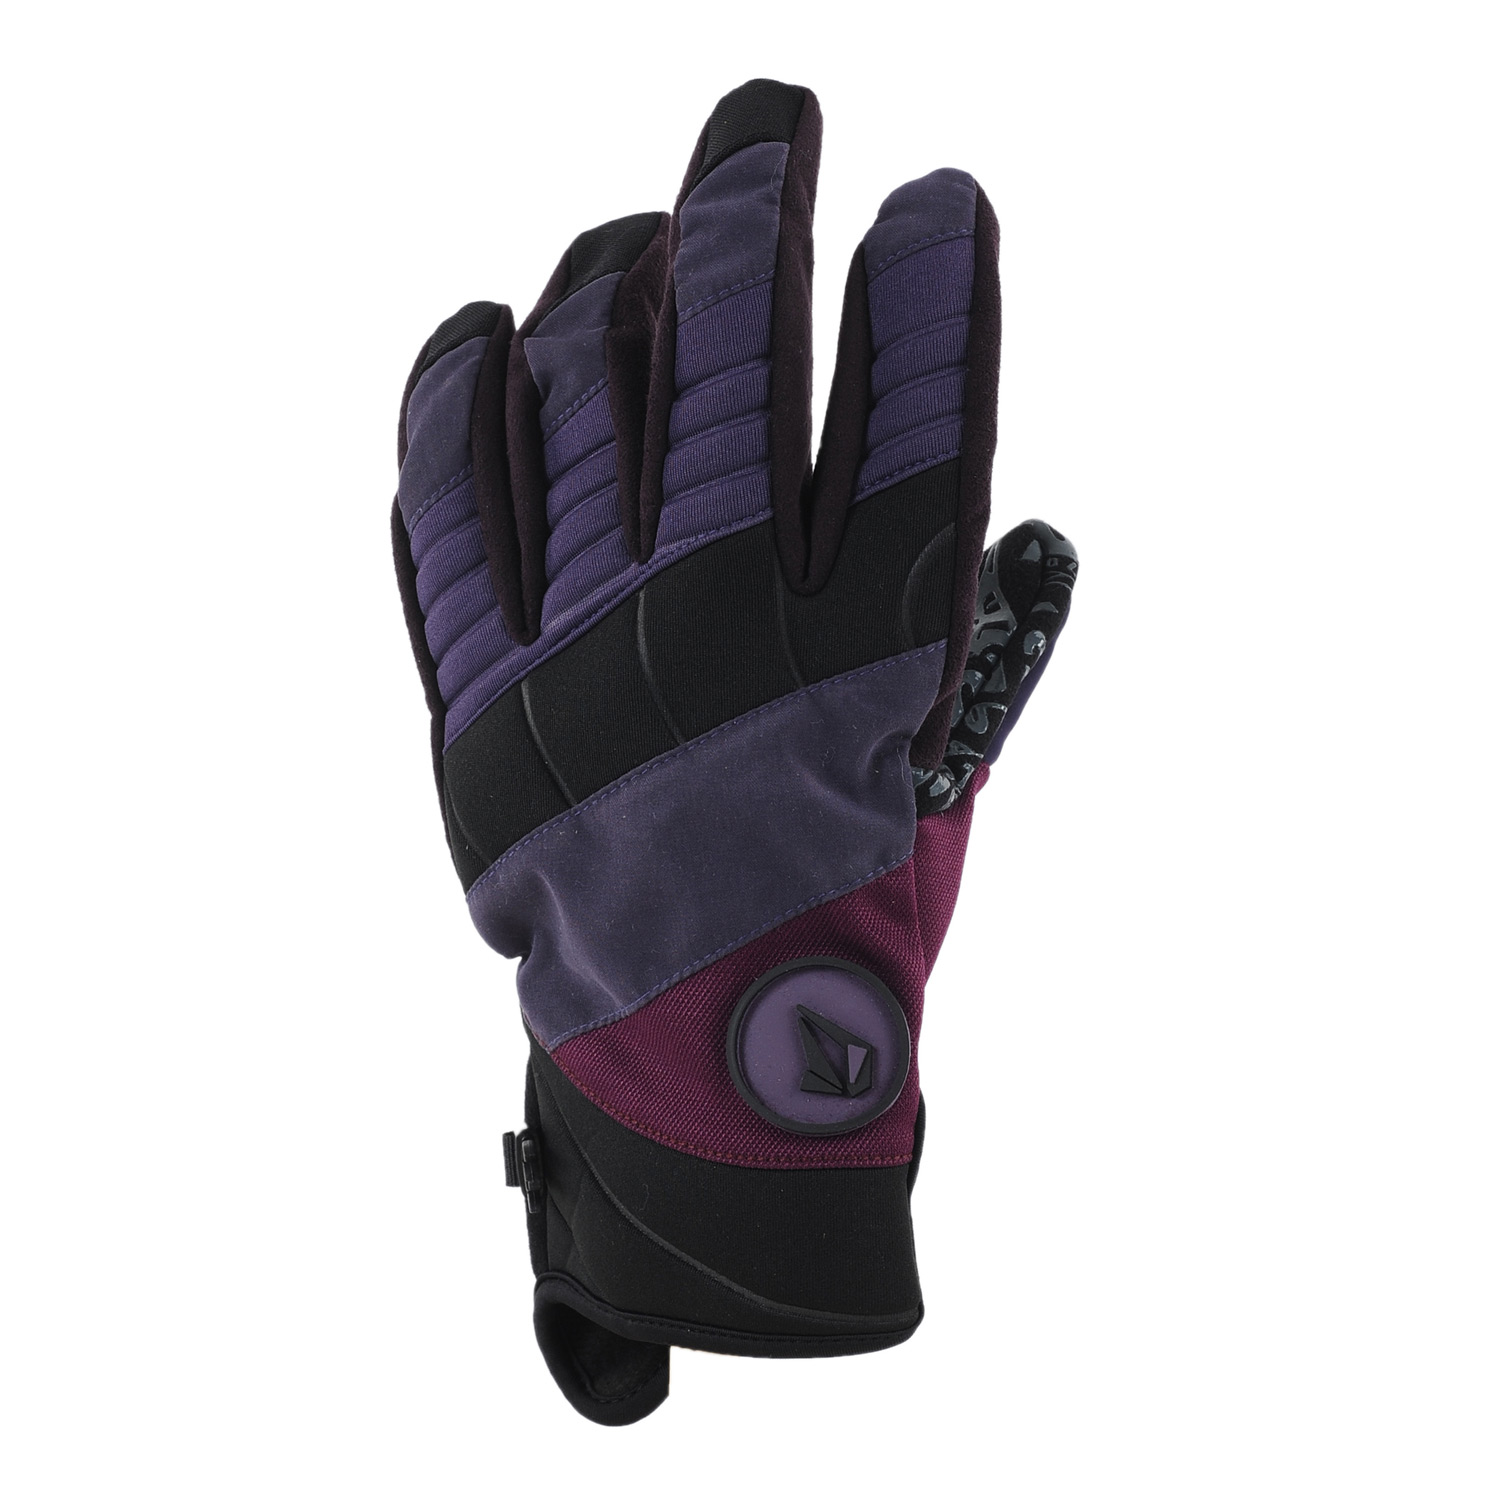 Snowboard Key Features of the Volcom Hypnotized Pipe Snowboard Gloves: V-Science Micro Fiber/Neoprene Shell Durable Grip Palm 100G Brushed Micro-Fiber Fixed Lining Ergonomically Curved Fingers Stretch/Elastic Neoprene Slip On Construction Silicon Printed Suede Nose Wipe Panel - $33.95